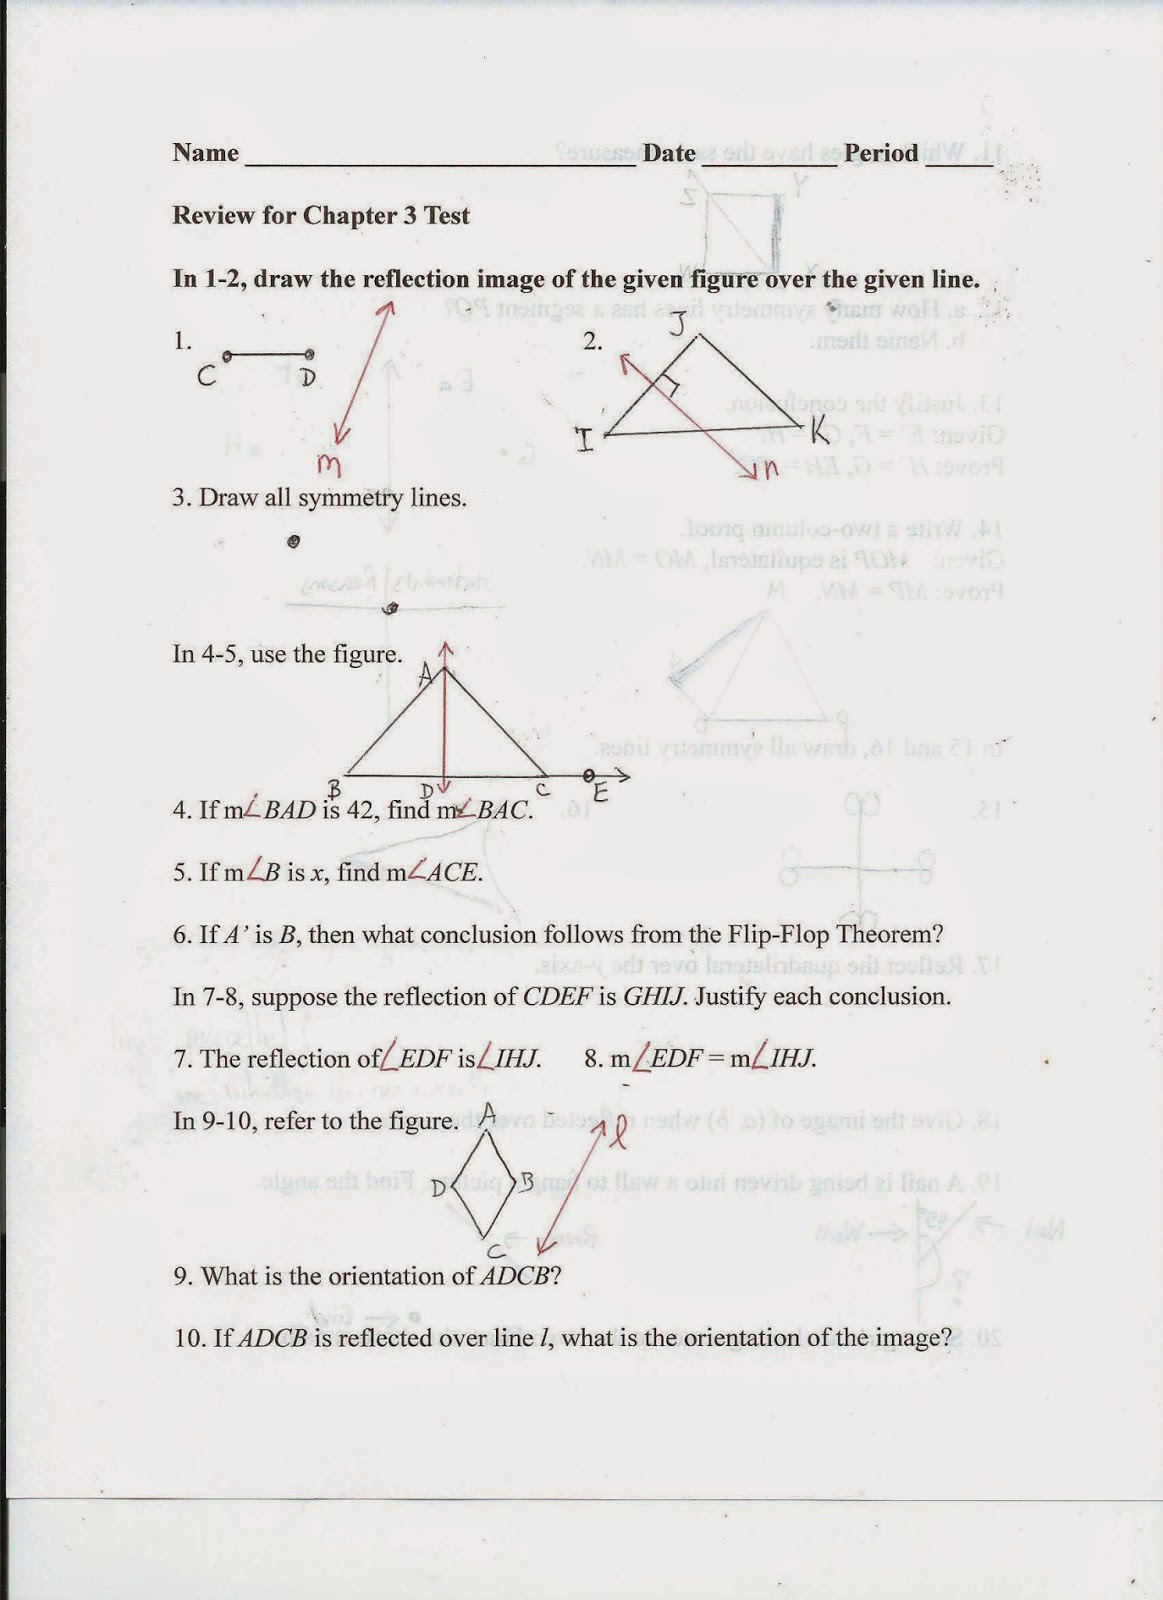 Geometry, Common Core Style: Review for Chapter 3 Test (Day 35)